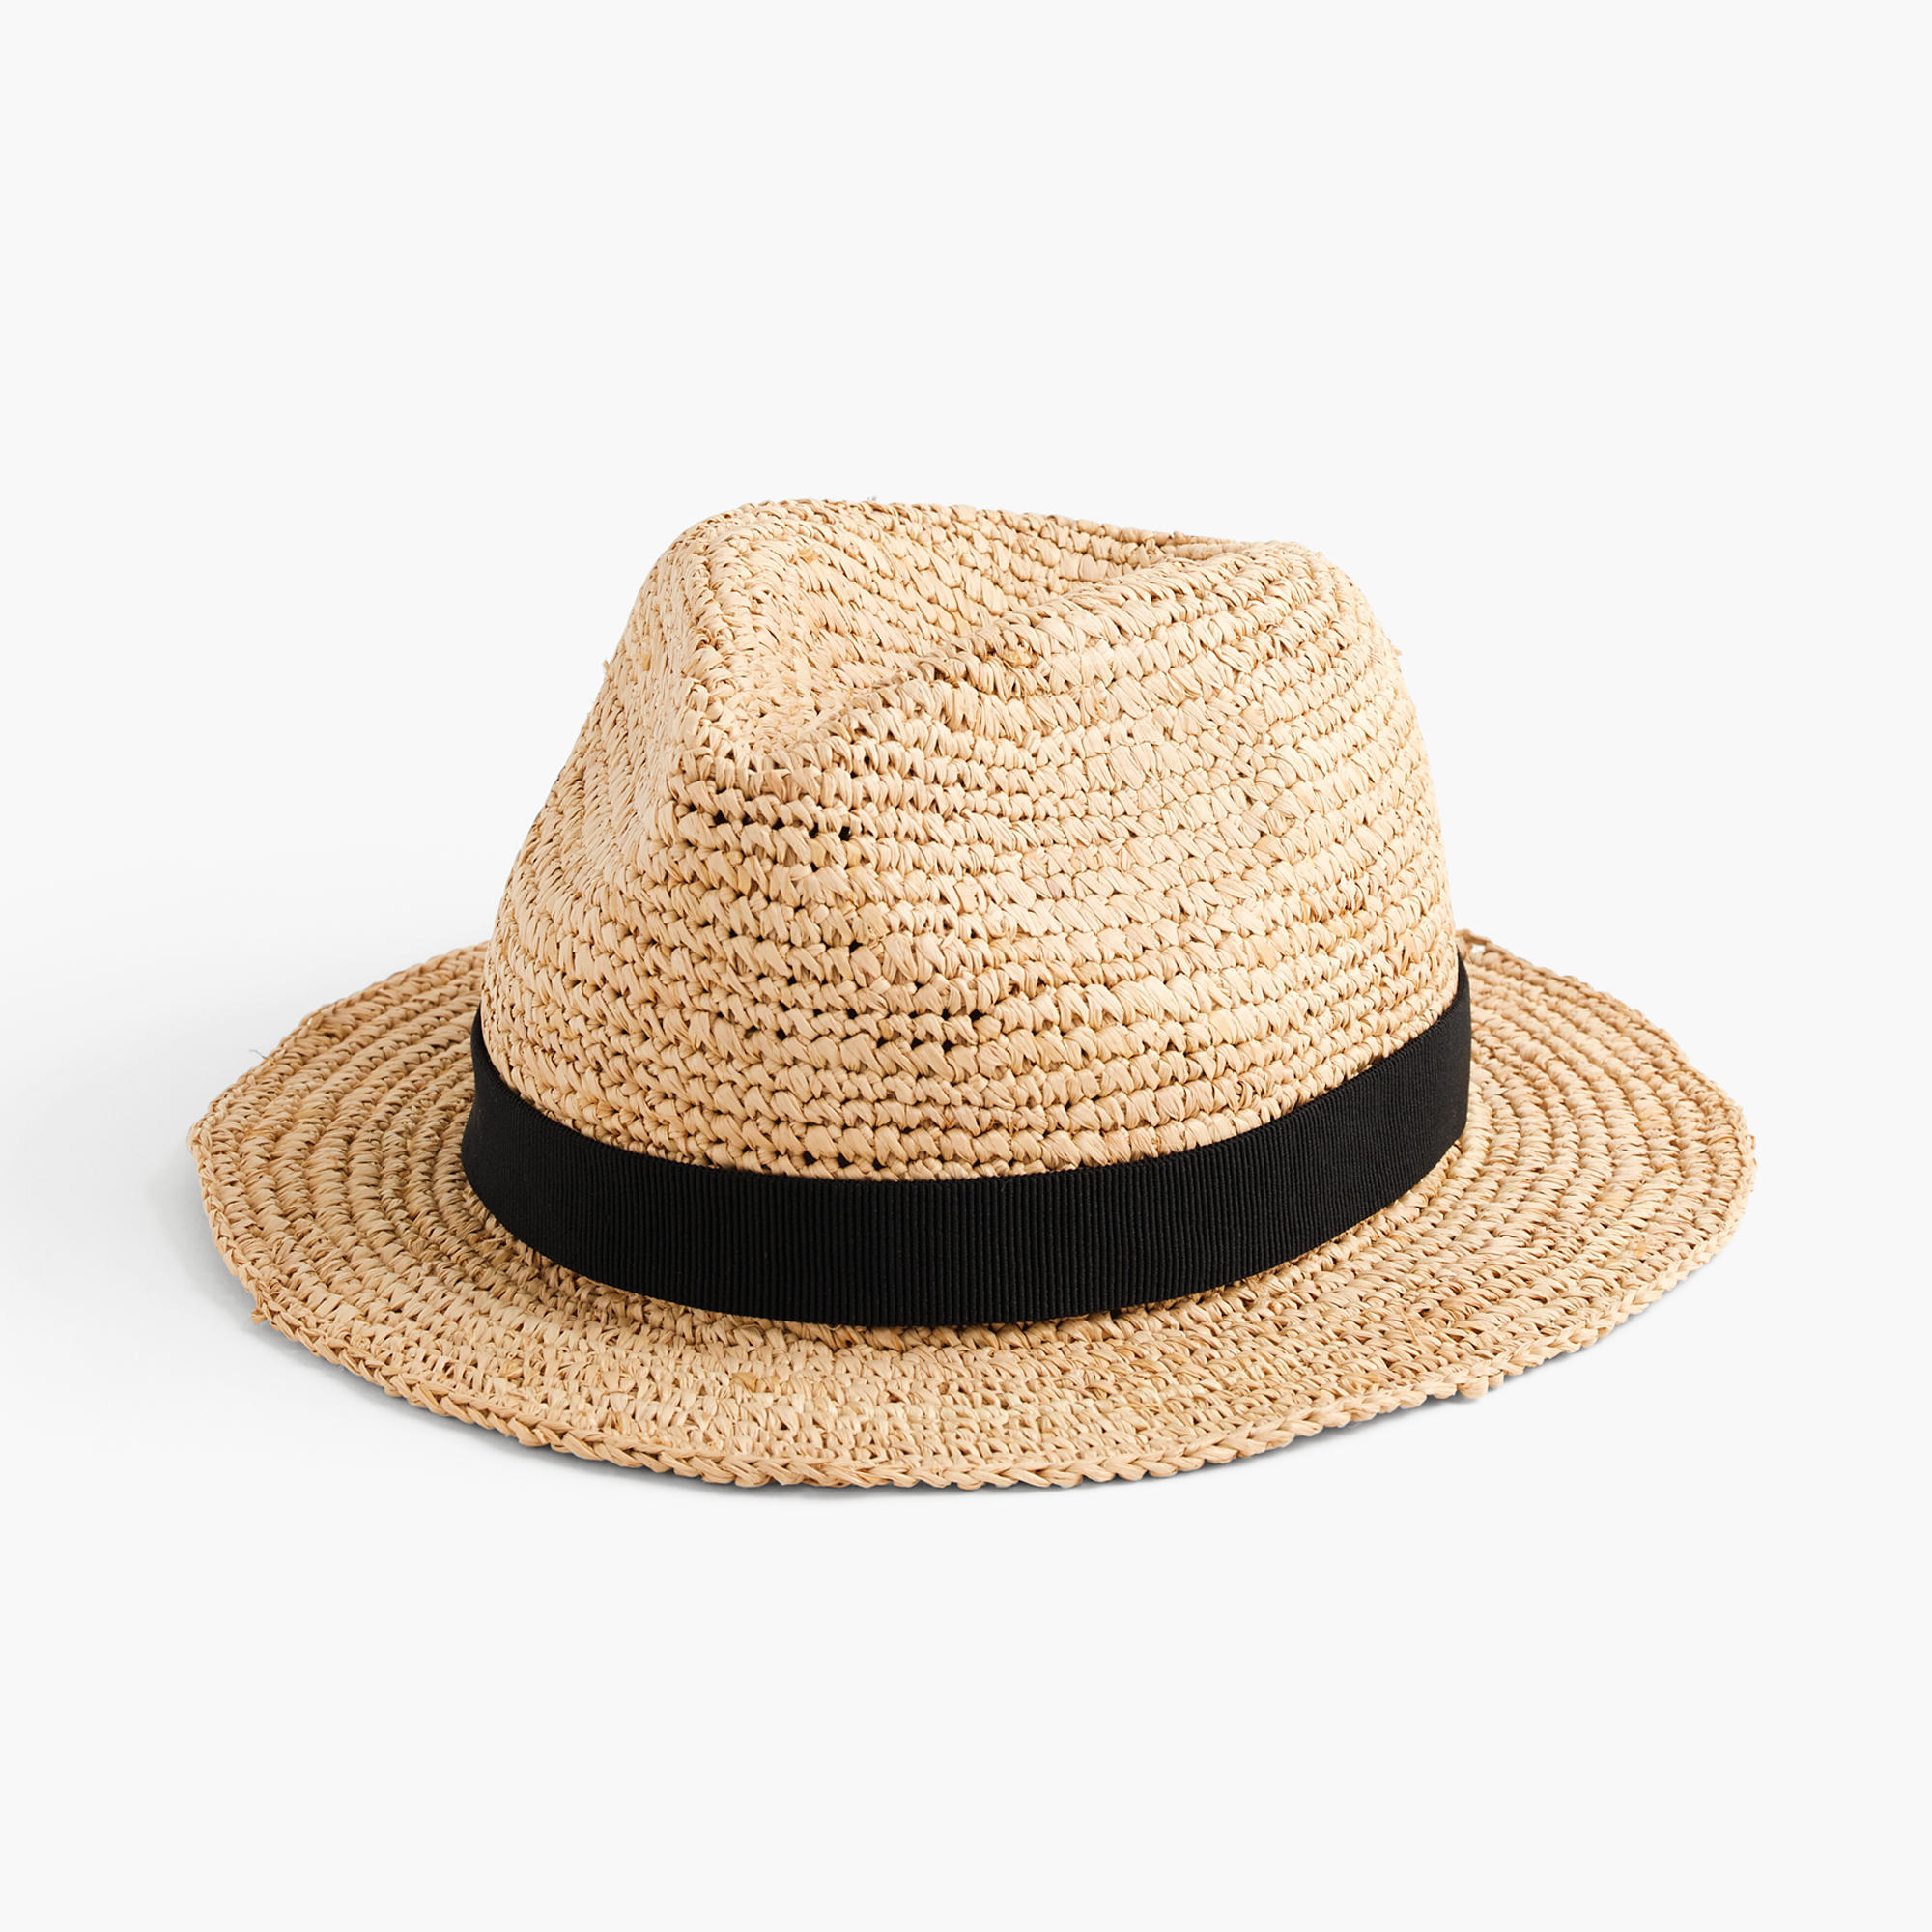 third image of The Straw Hat with Packable straw hat : | J.Crew